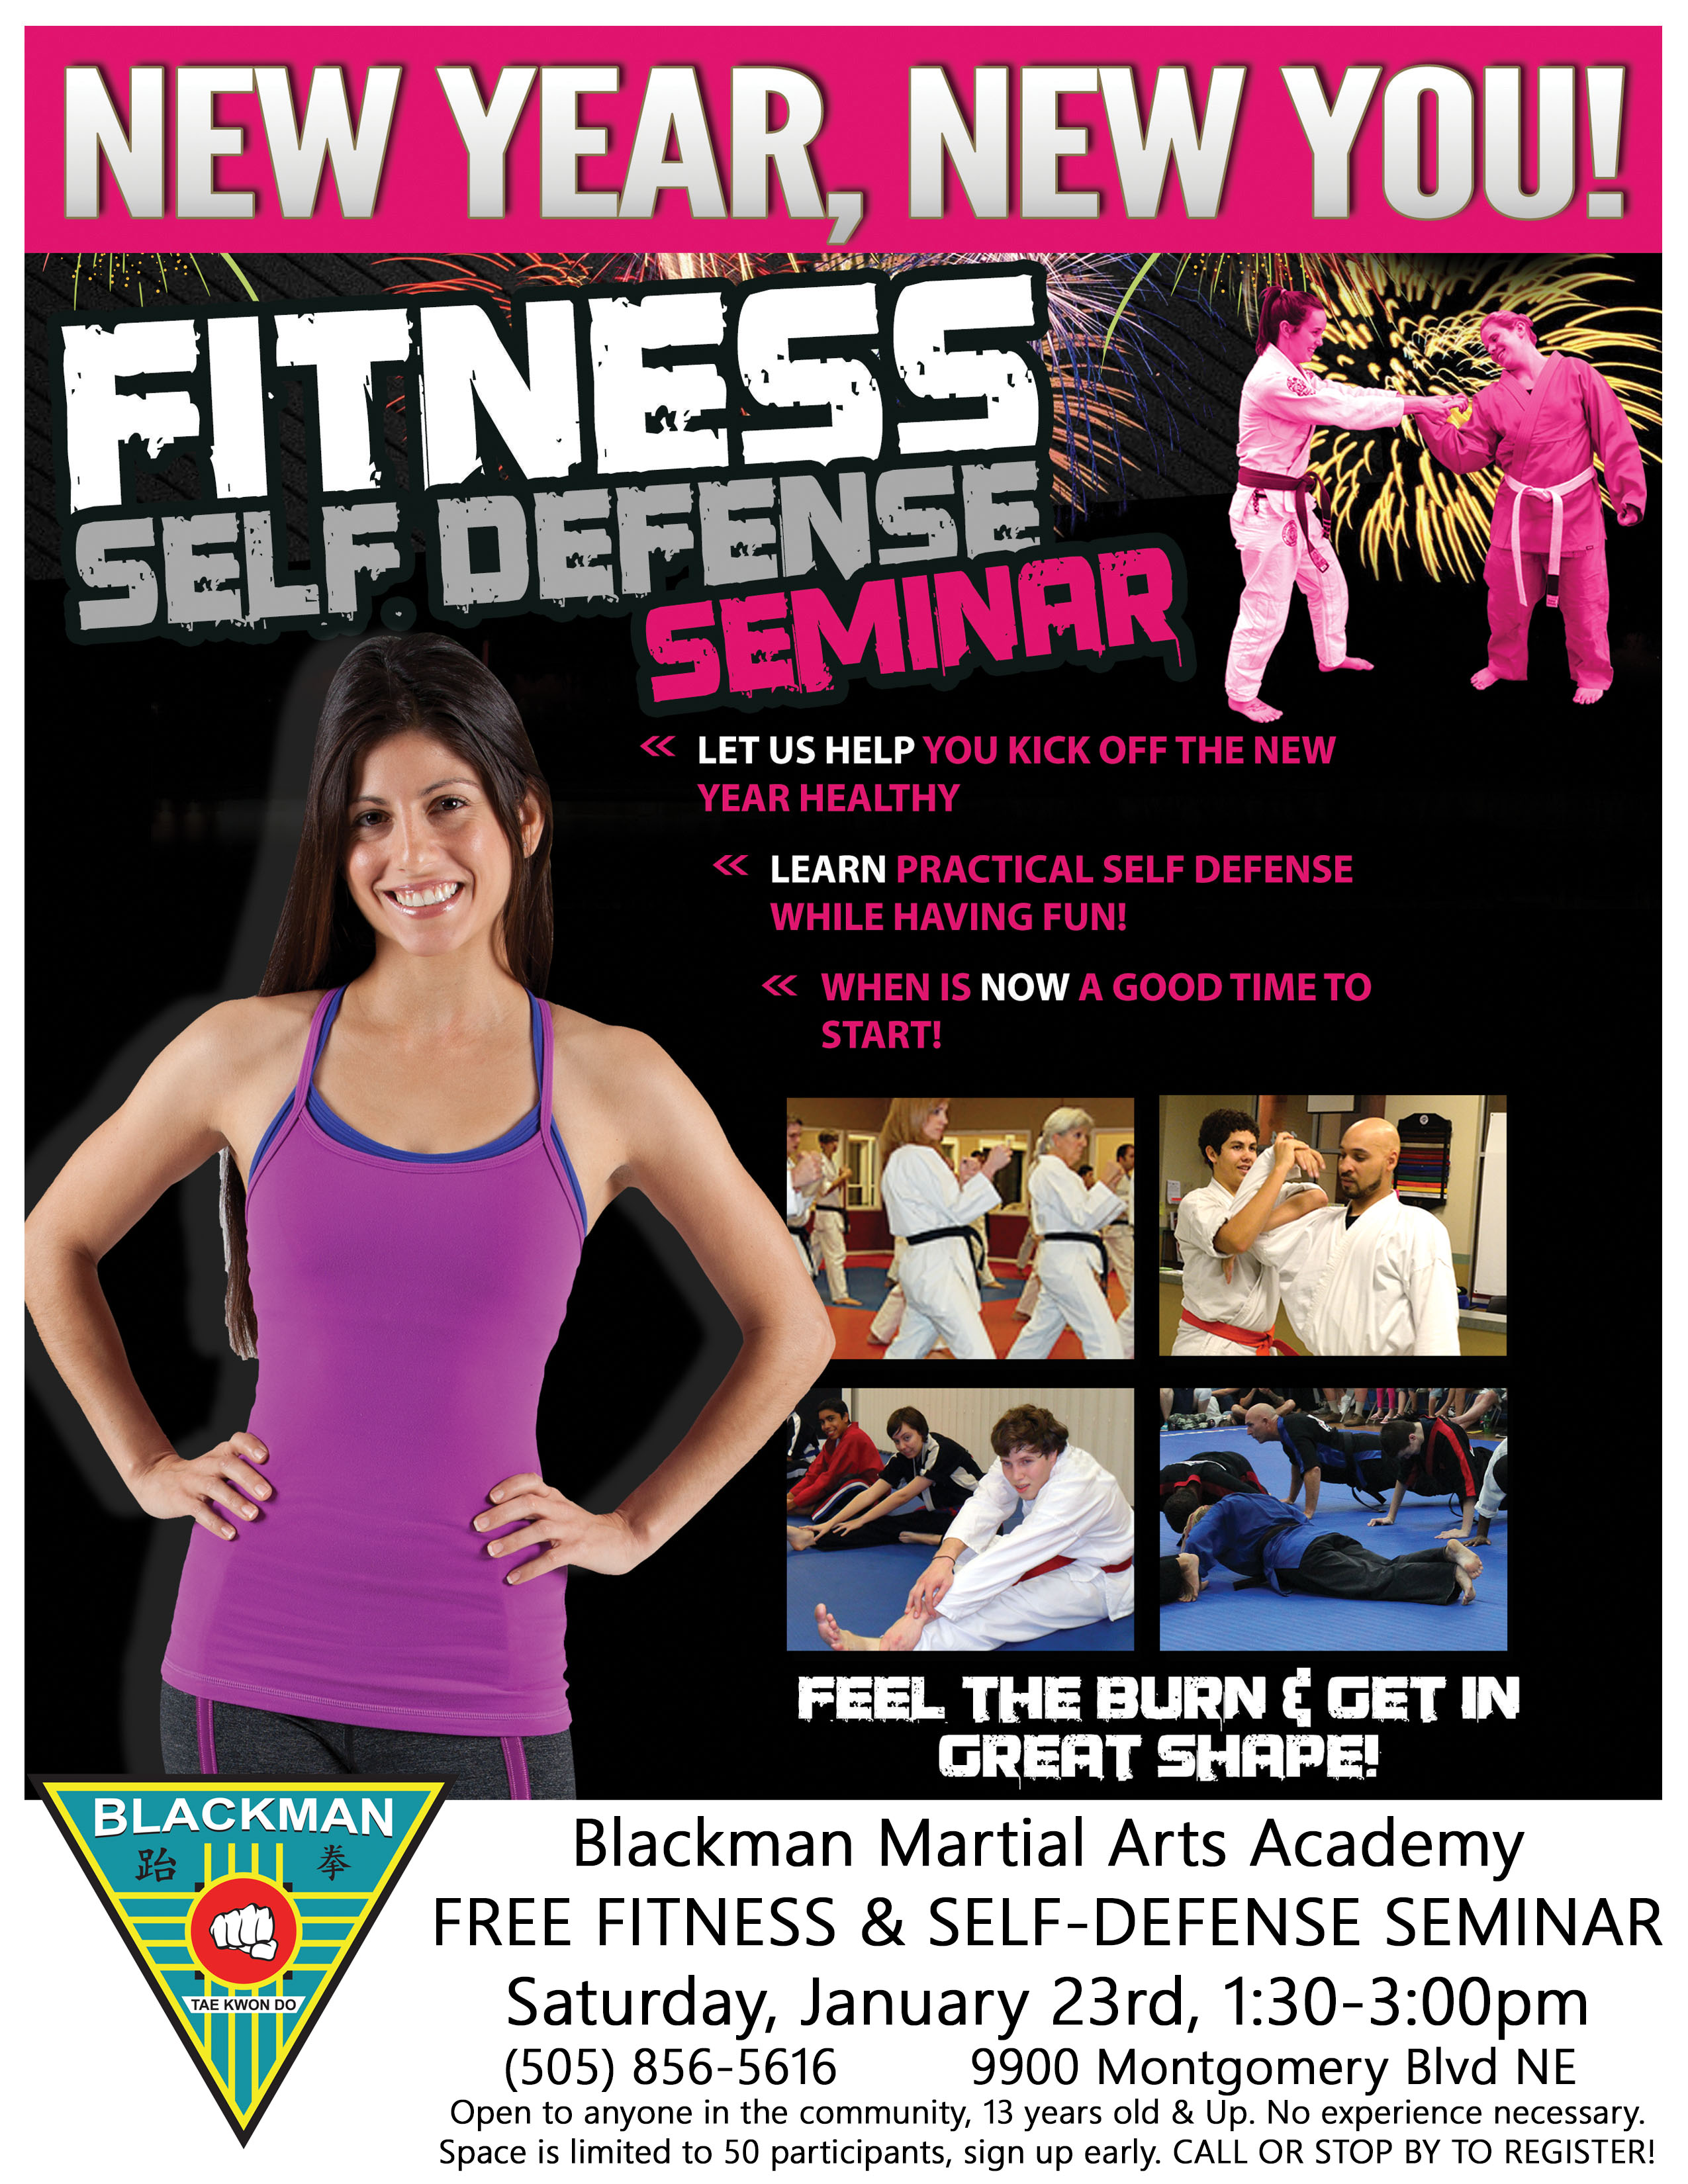 We Invite You To Attend Our Free Fitness Self Defense Seminar